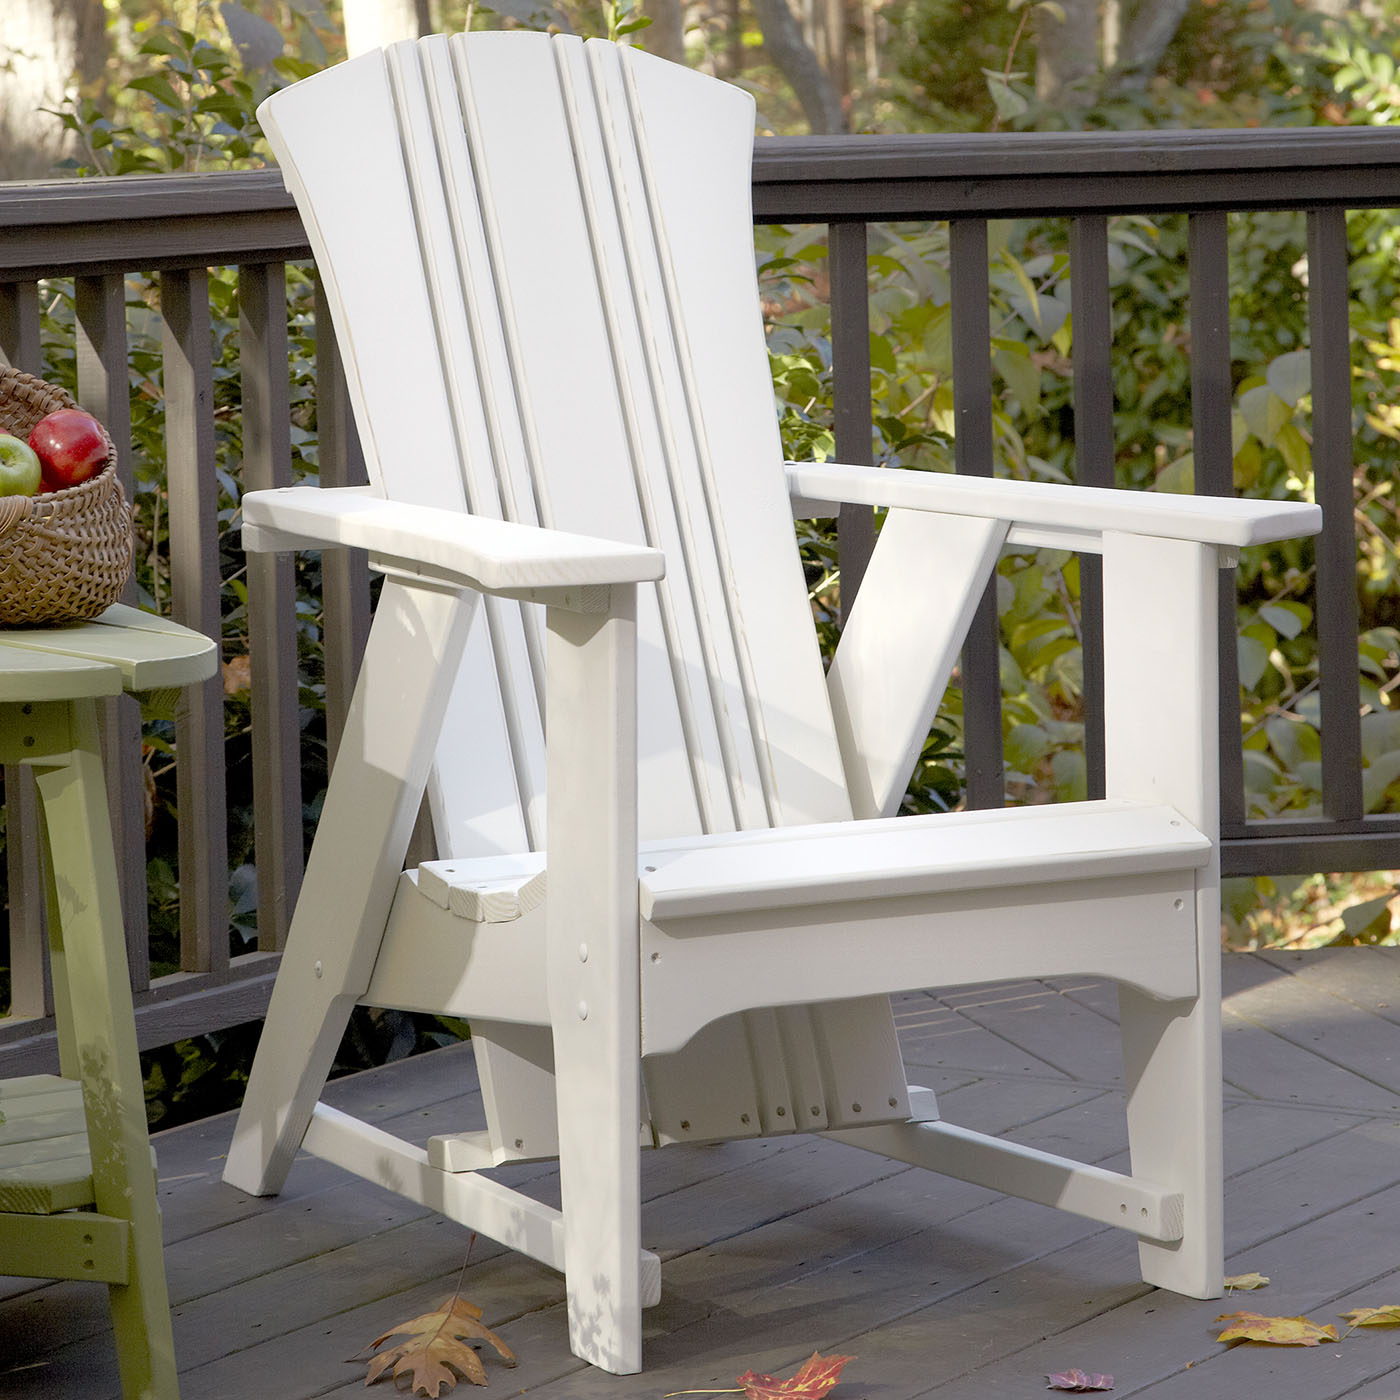 Splendid Chair-Carolina-Preserves-Outdoor-Chair Product Picture 325